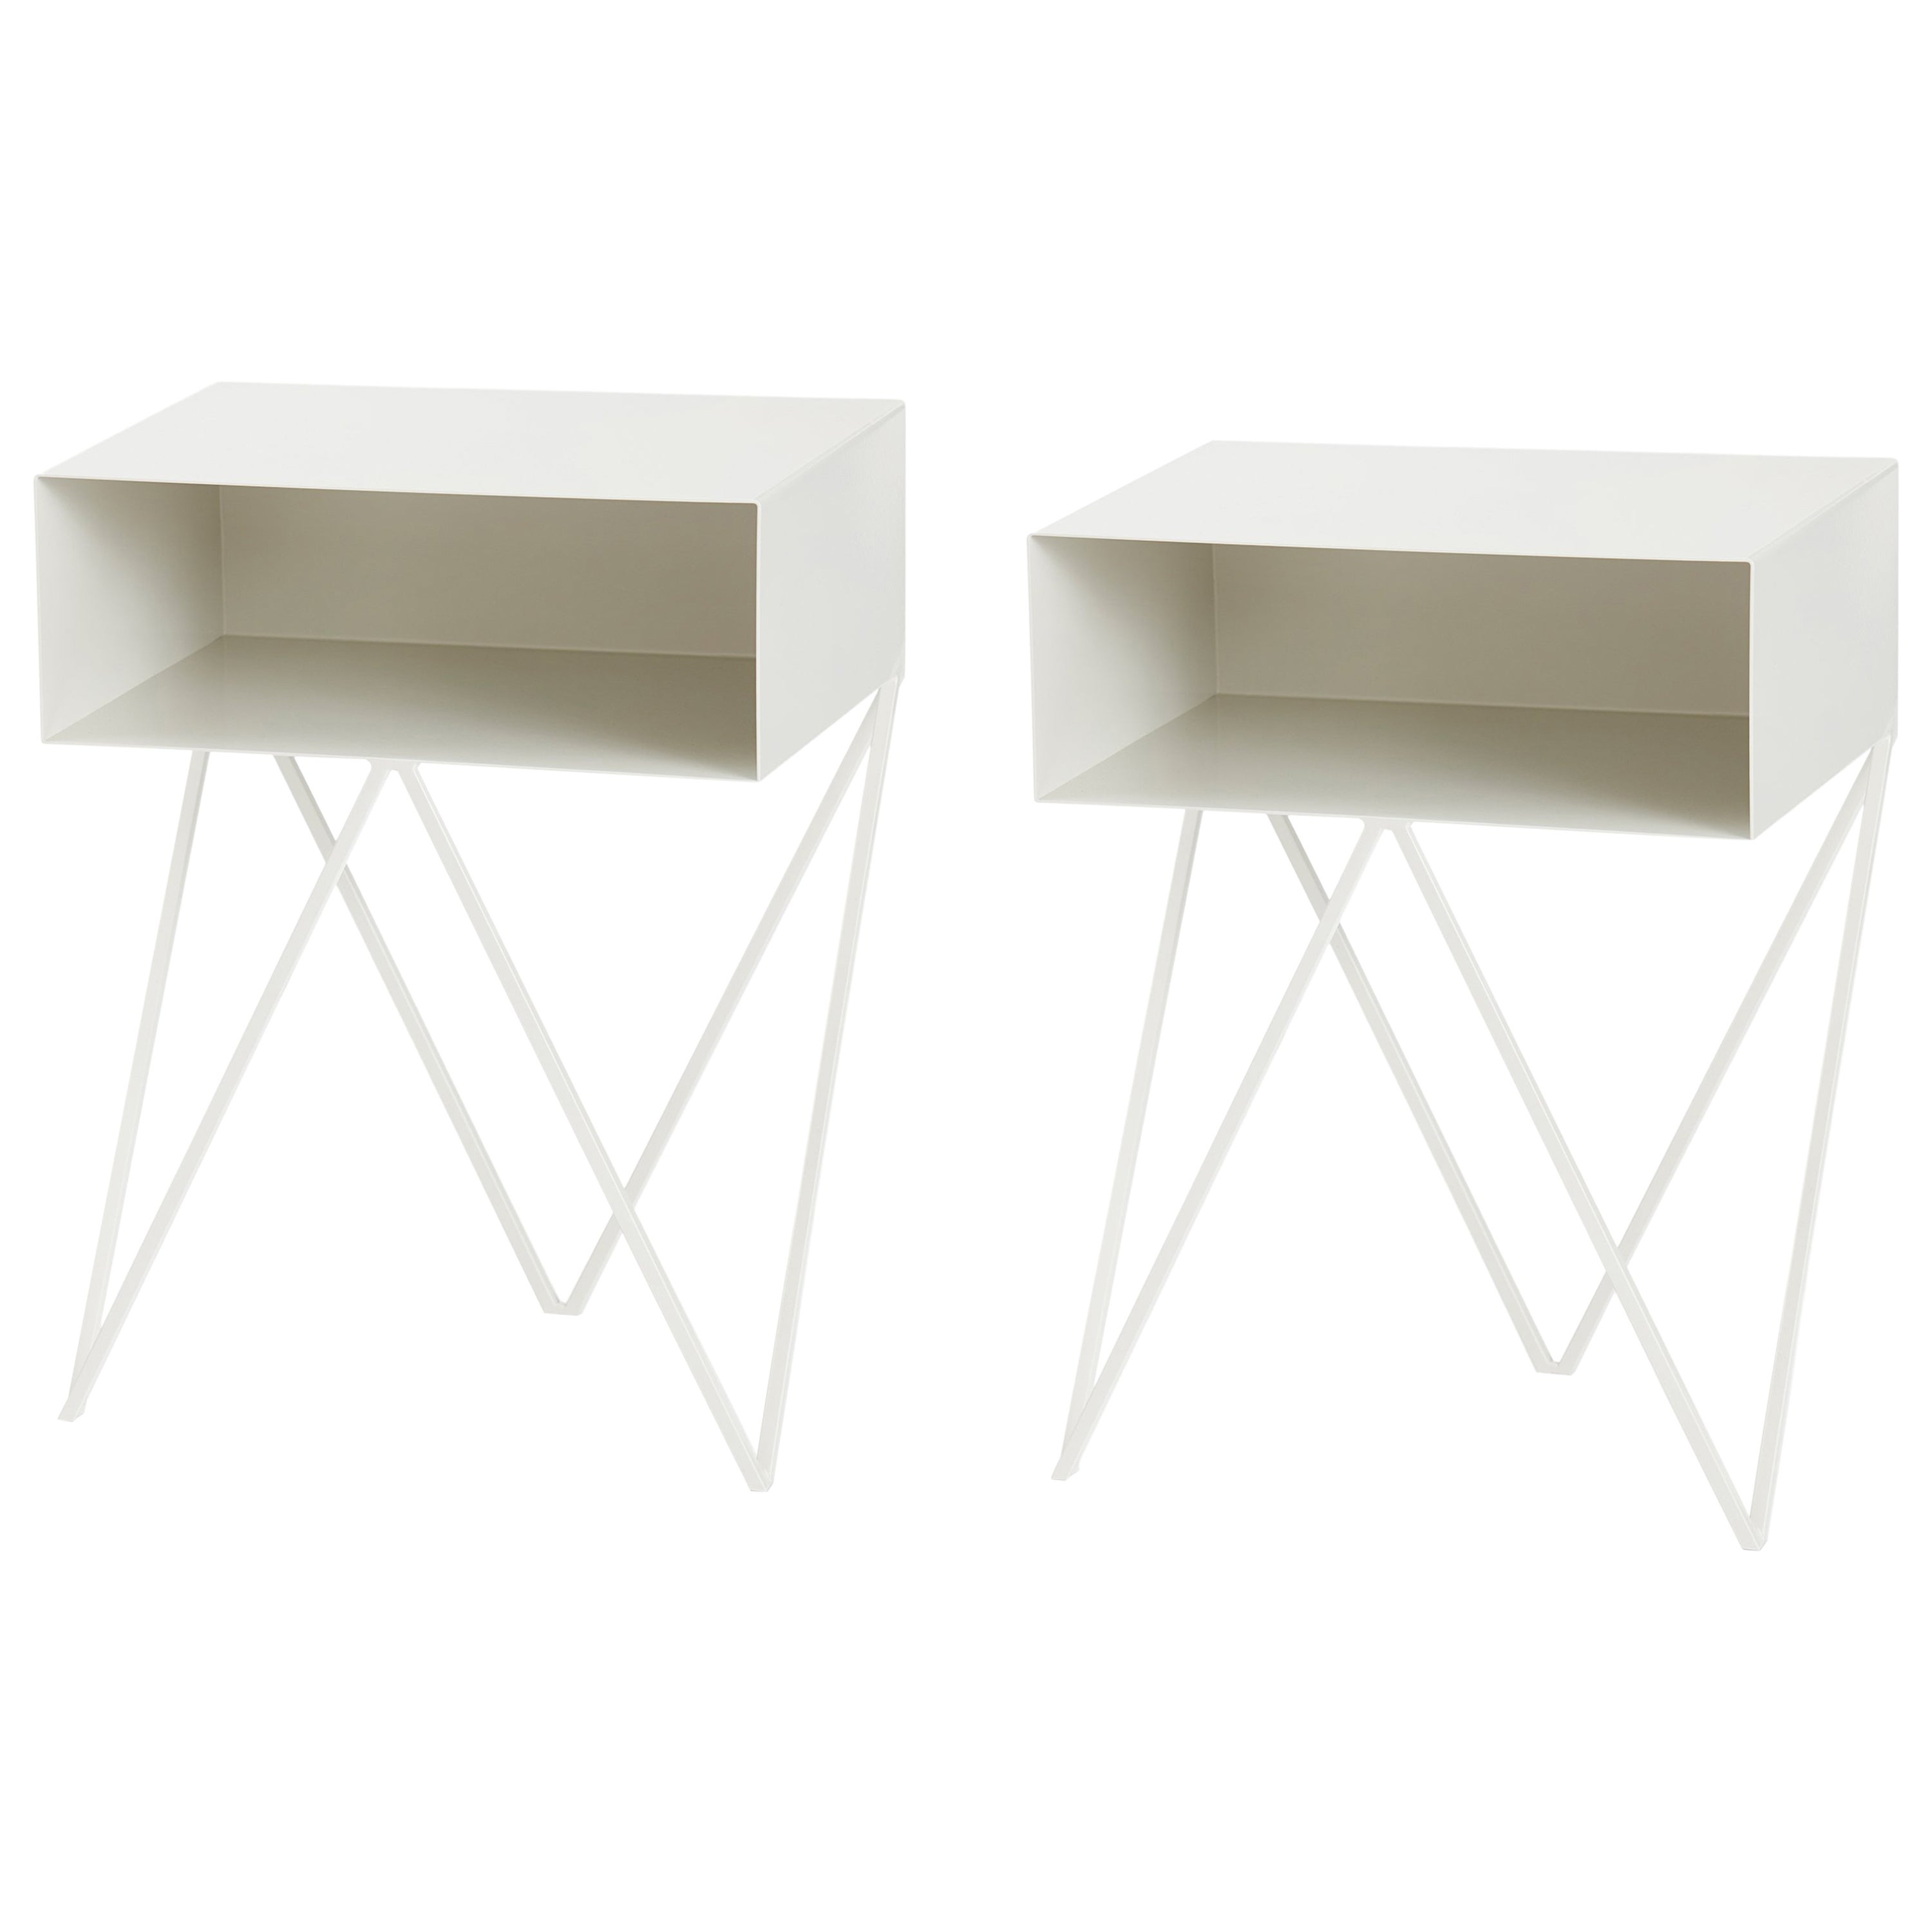 Pair of Paper White Powder Coated Steel Robot Bedside Tables